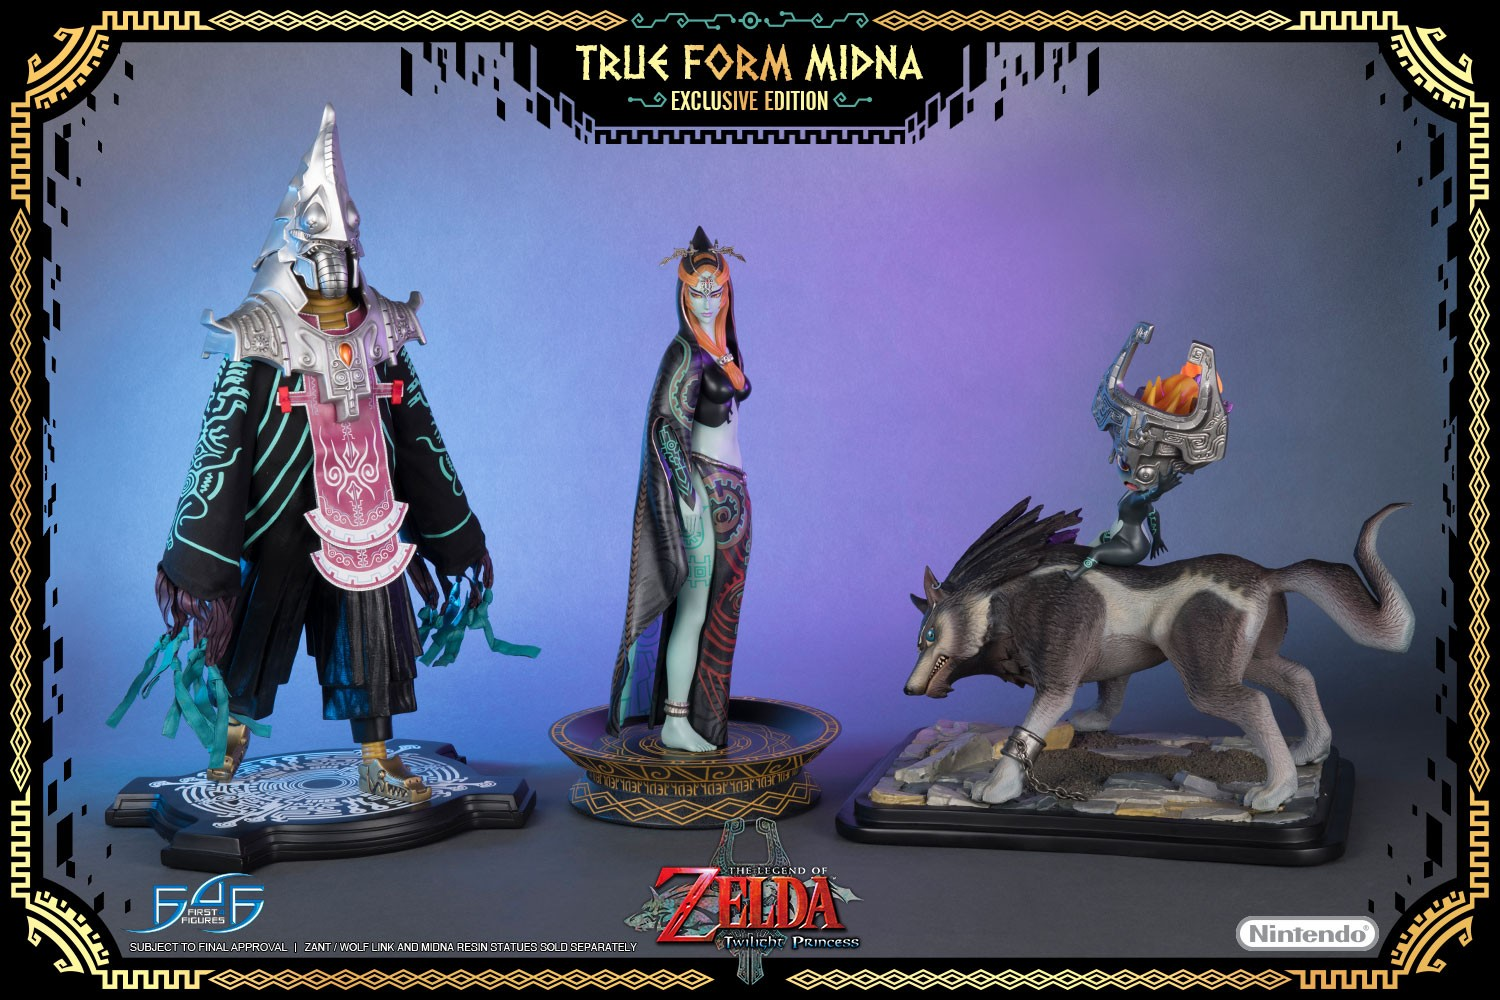 True Form Midna Scale